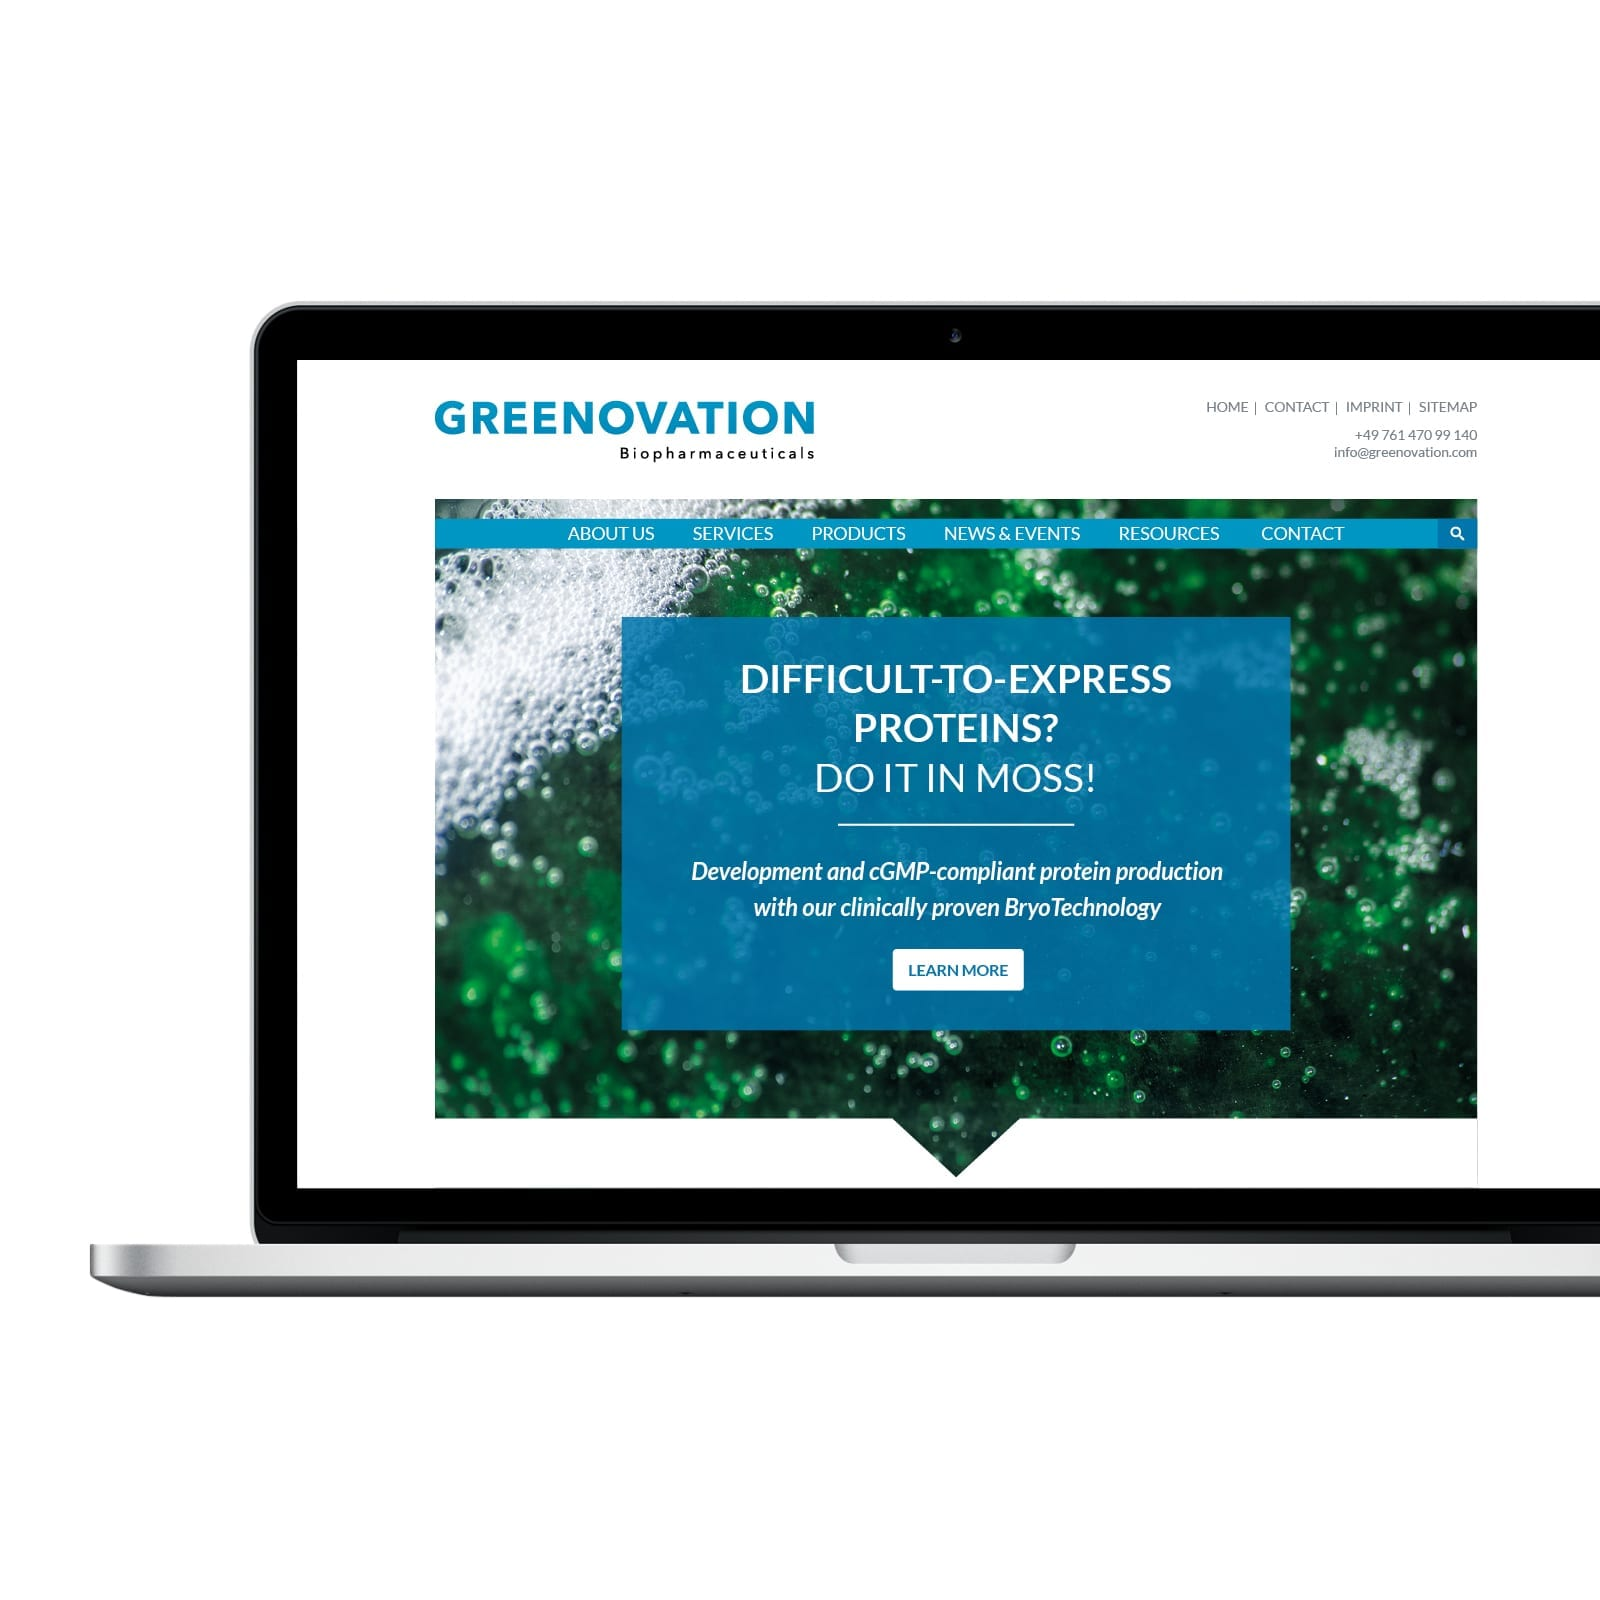 Greenovation und Eleva GmbH Referenz der Agentur RIGHT Marketing Berlin.